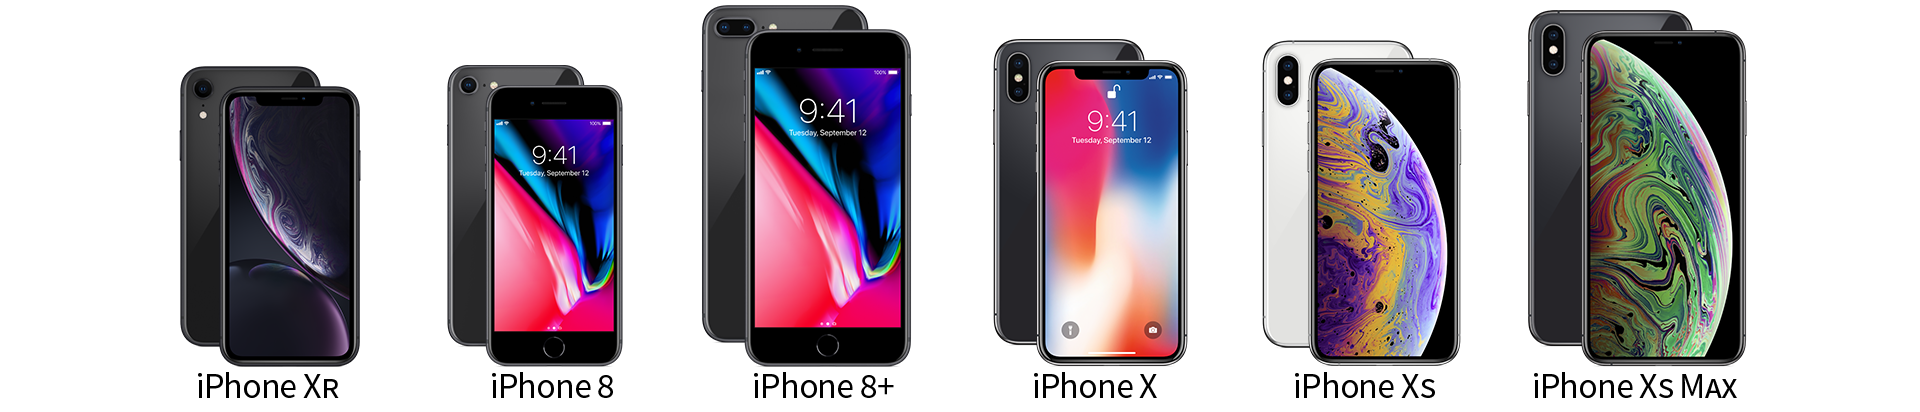 iphone-700off-Select-Phones-latest